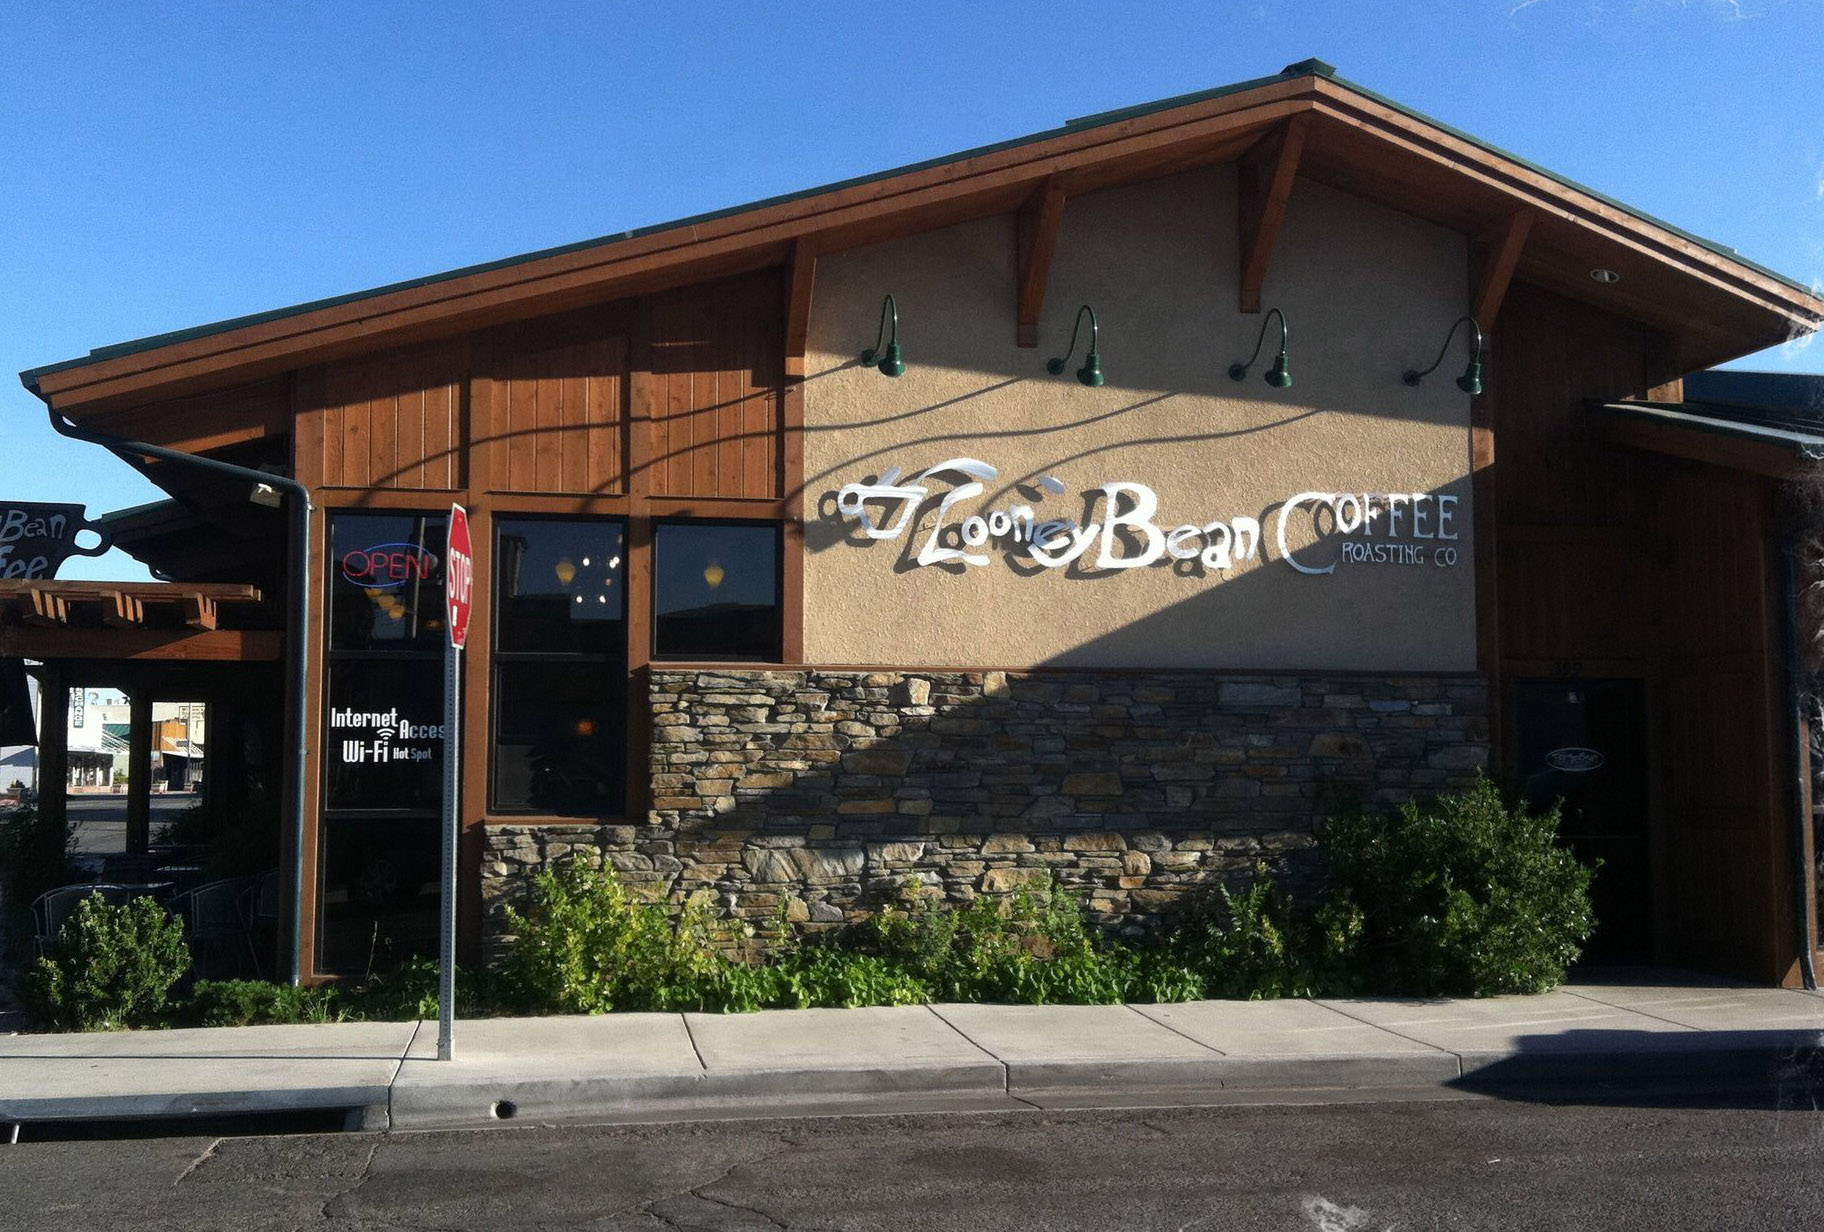 The newly expanded Looney Bean now has more options for seating as well as food